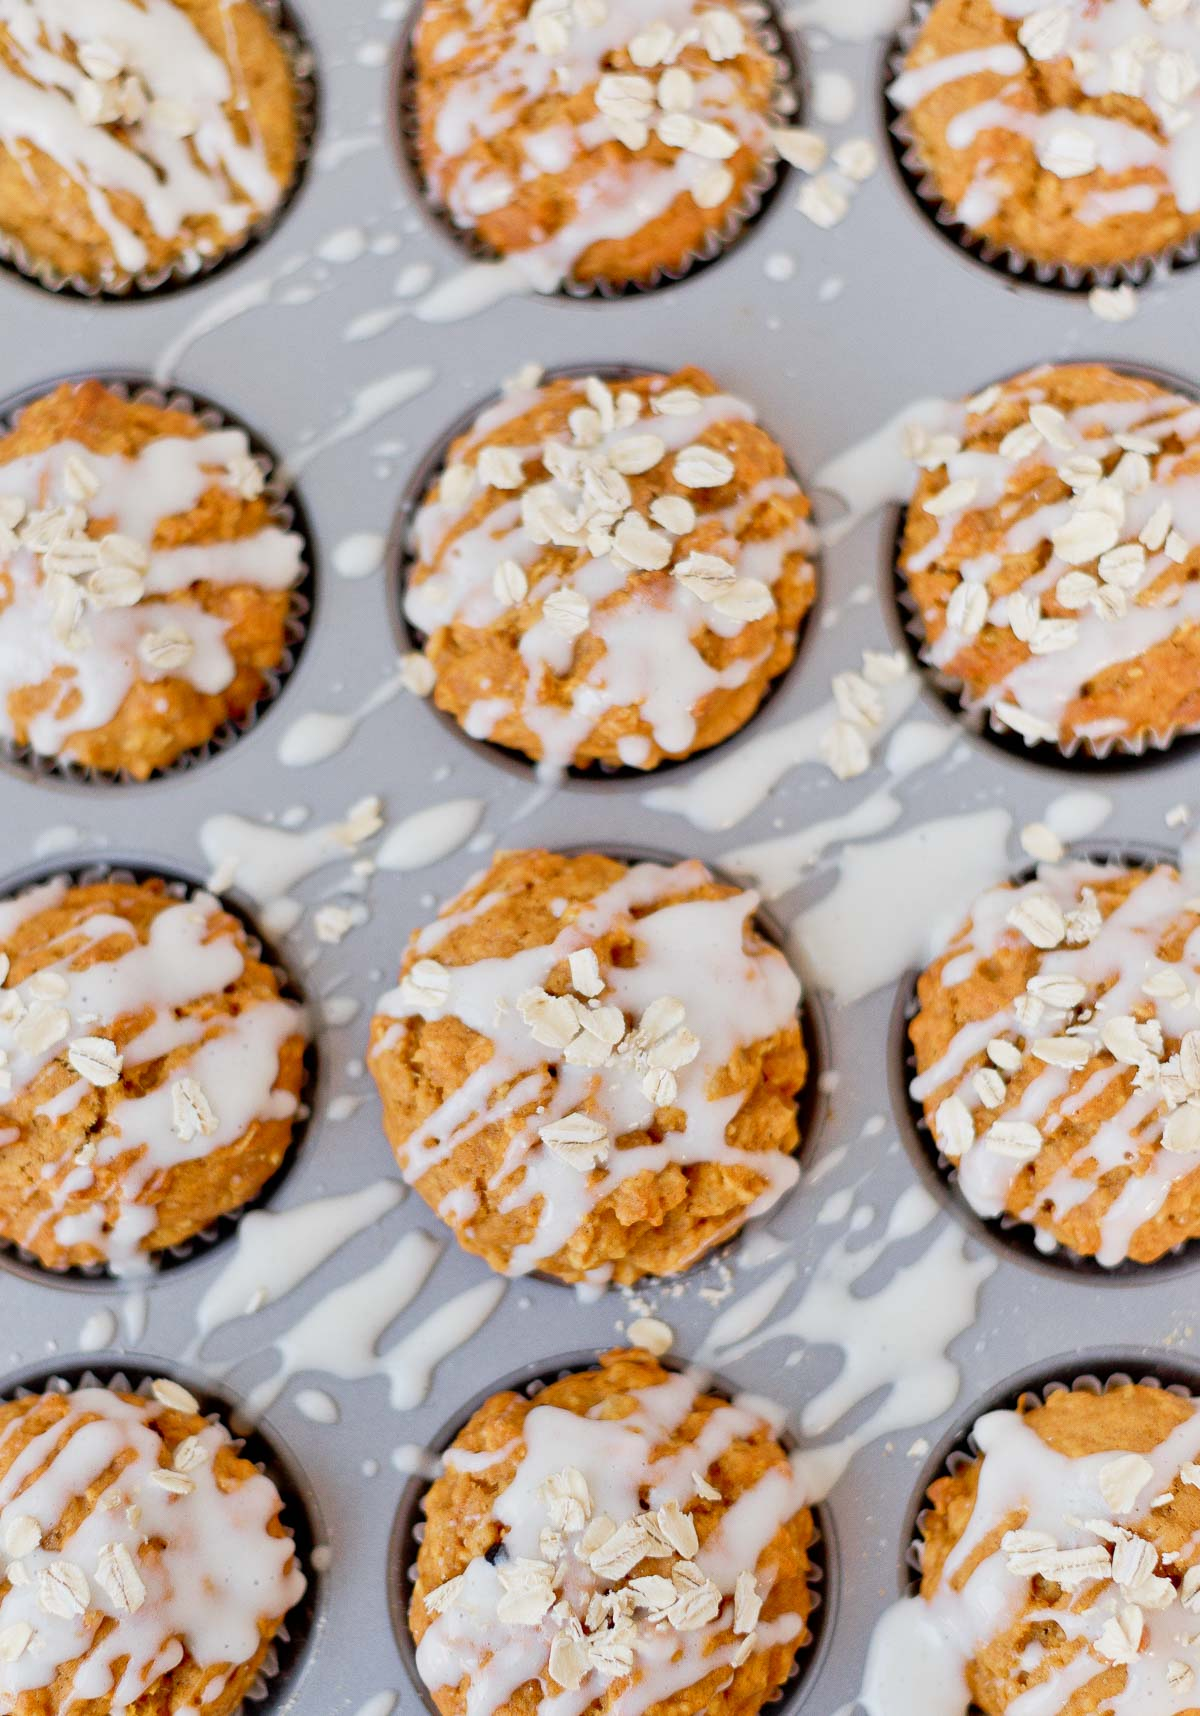 Pumpkin muffins with a cream cheese glaze and oats sprinkled on top.